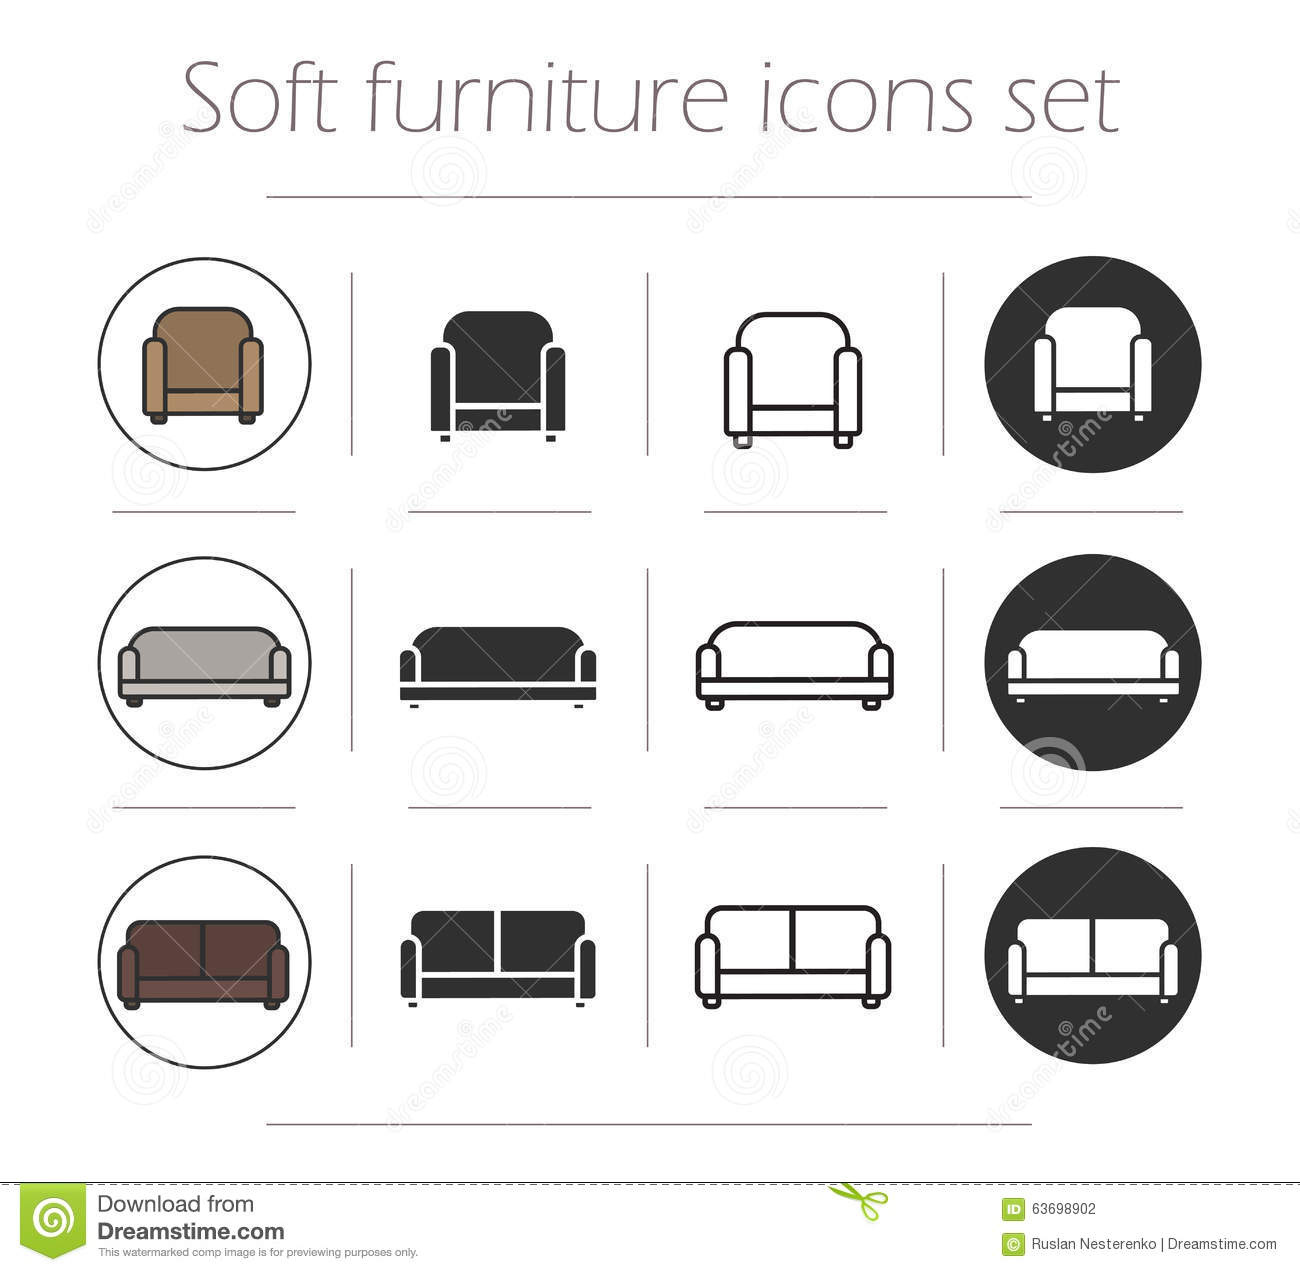 Line Art Icons : Soft furnishing icons set stock vector illustration of